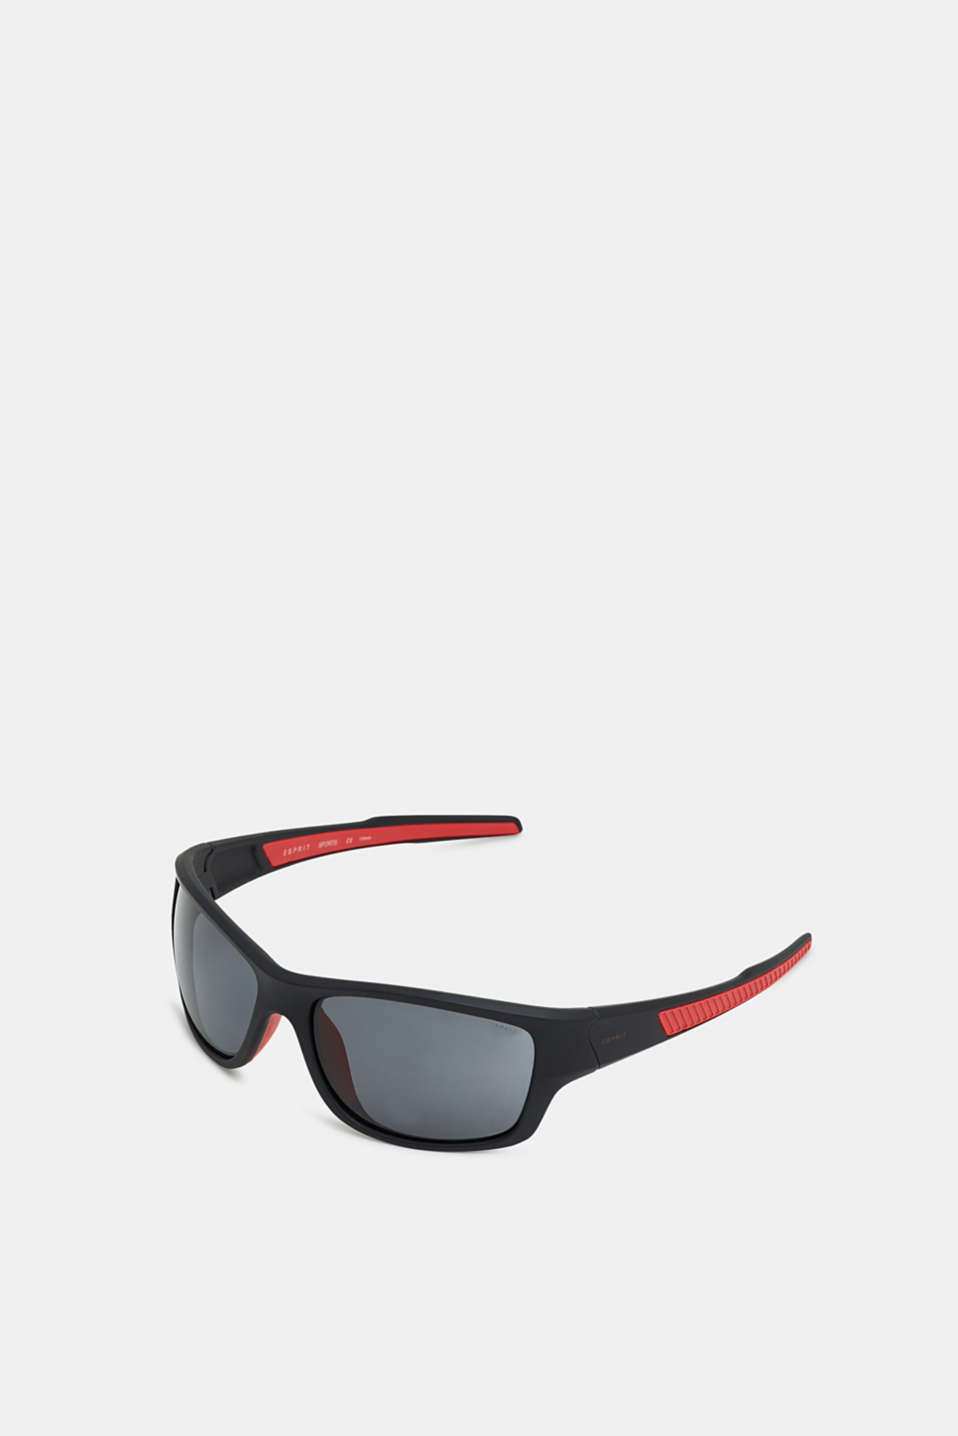 Esprit - Unisex sunglasses with rubberised temples